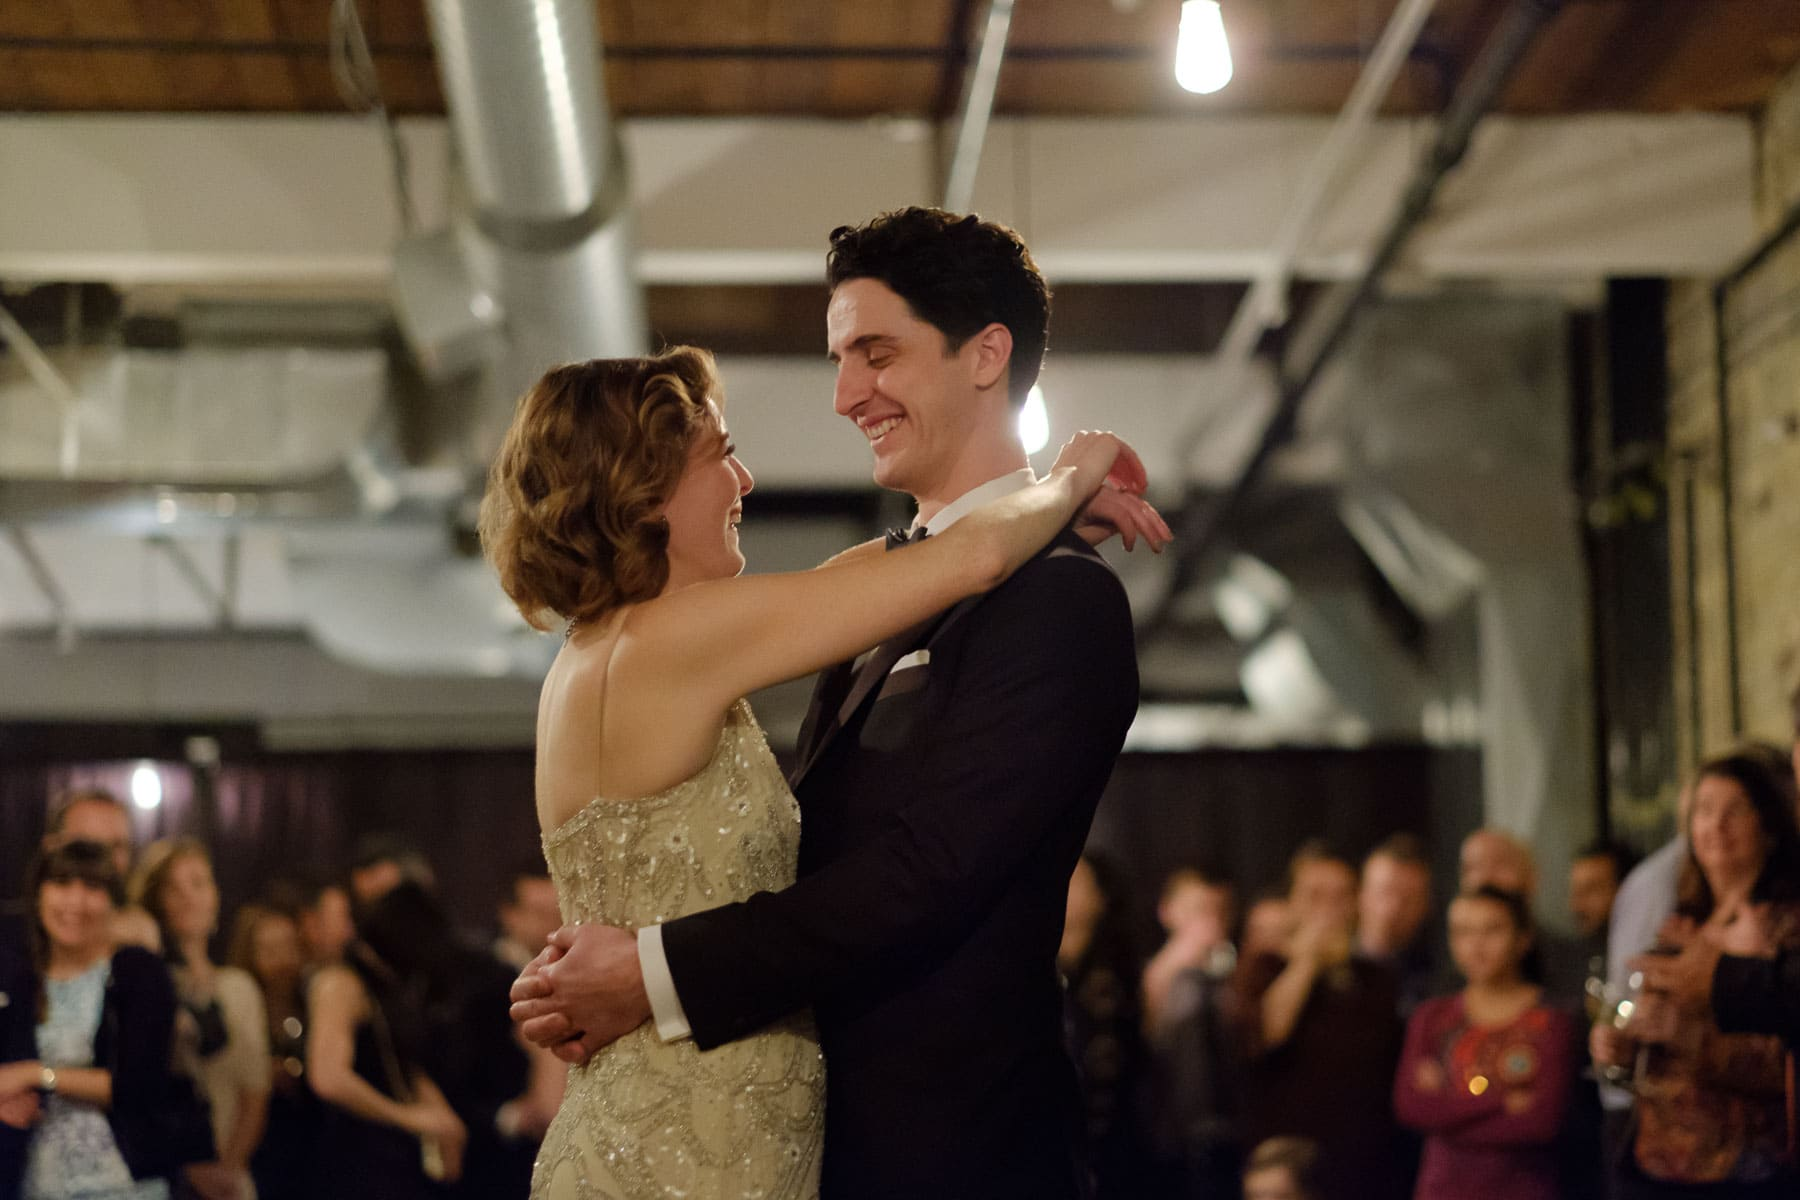 The bride and groom smile at each other during first dance with crowd in background at The Burroughes wedding.